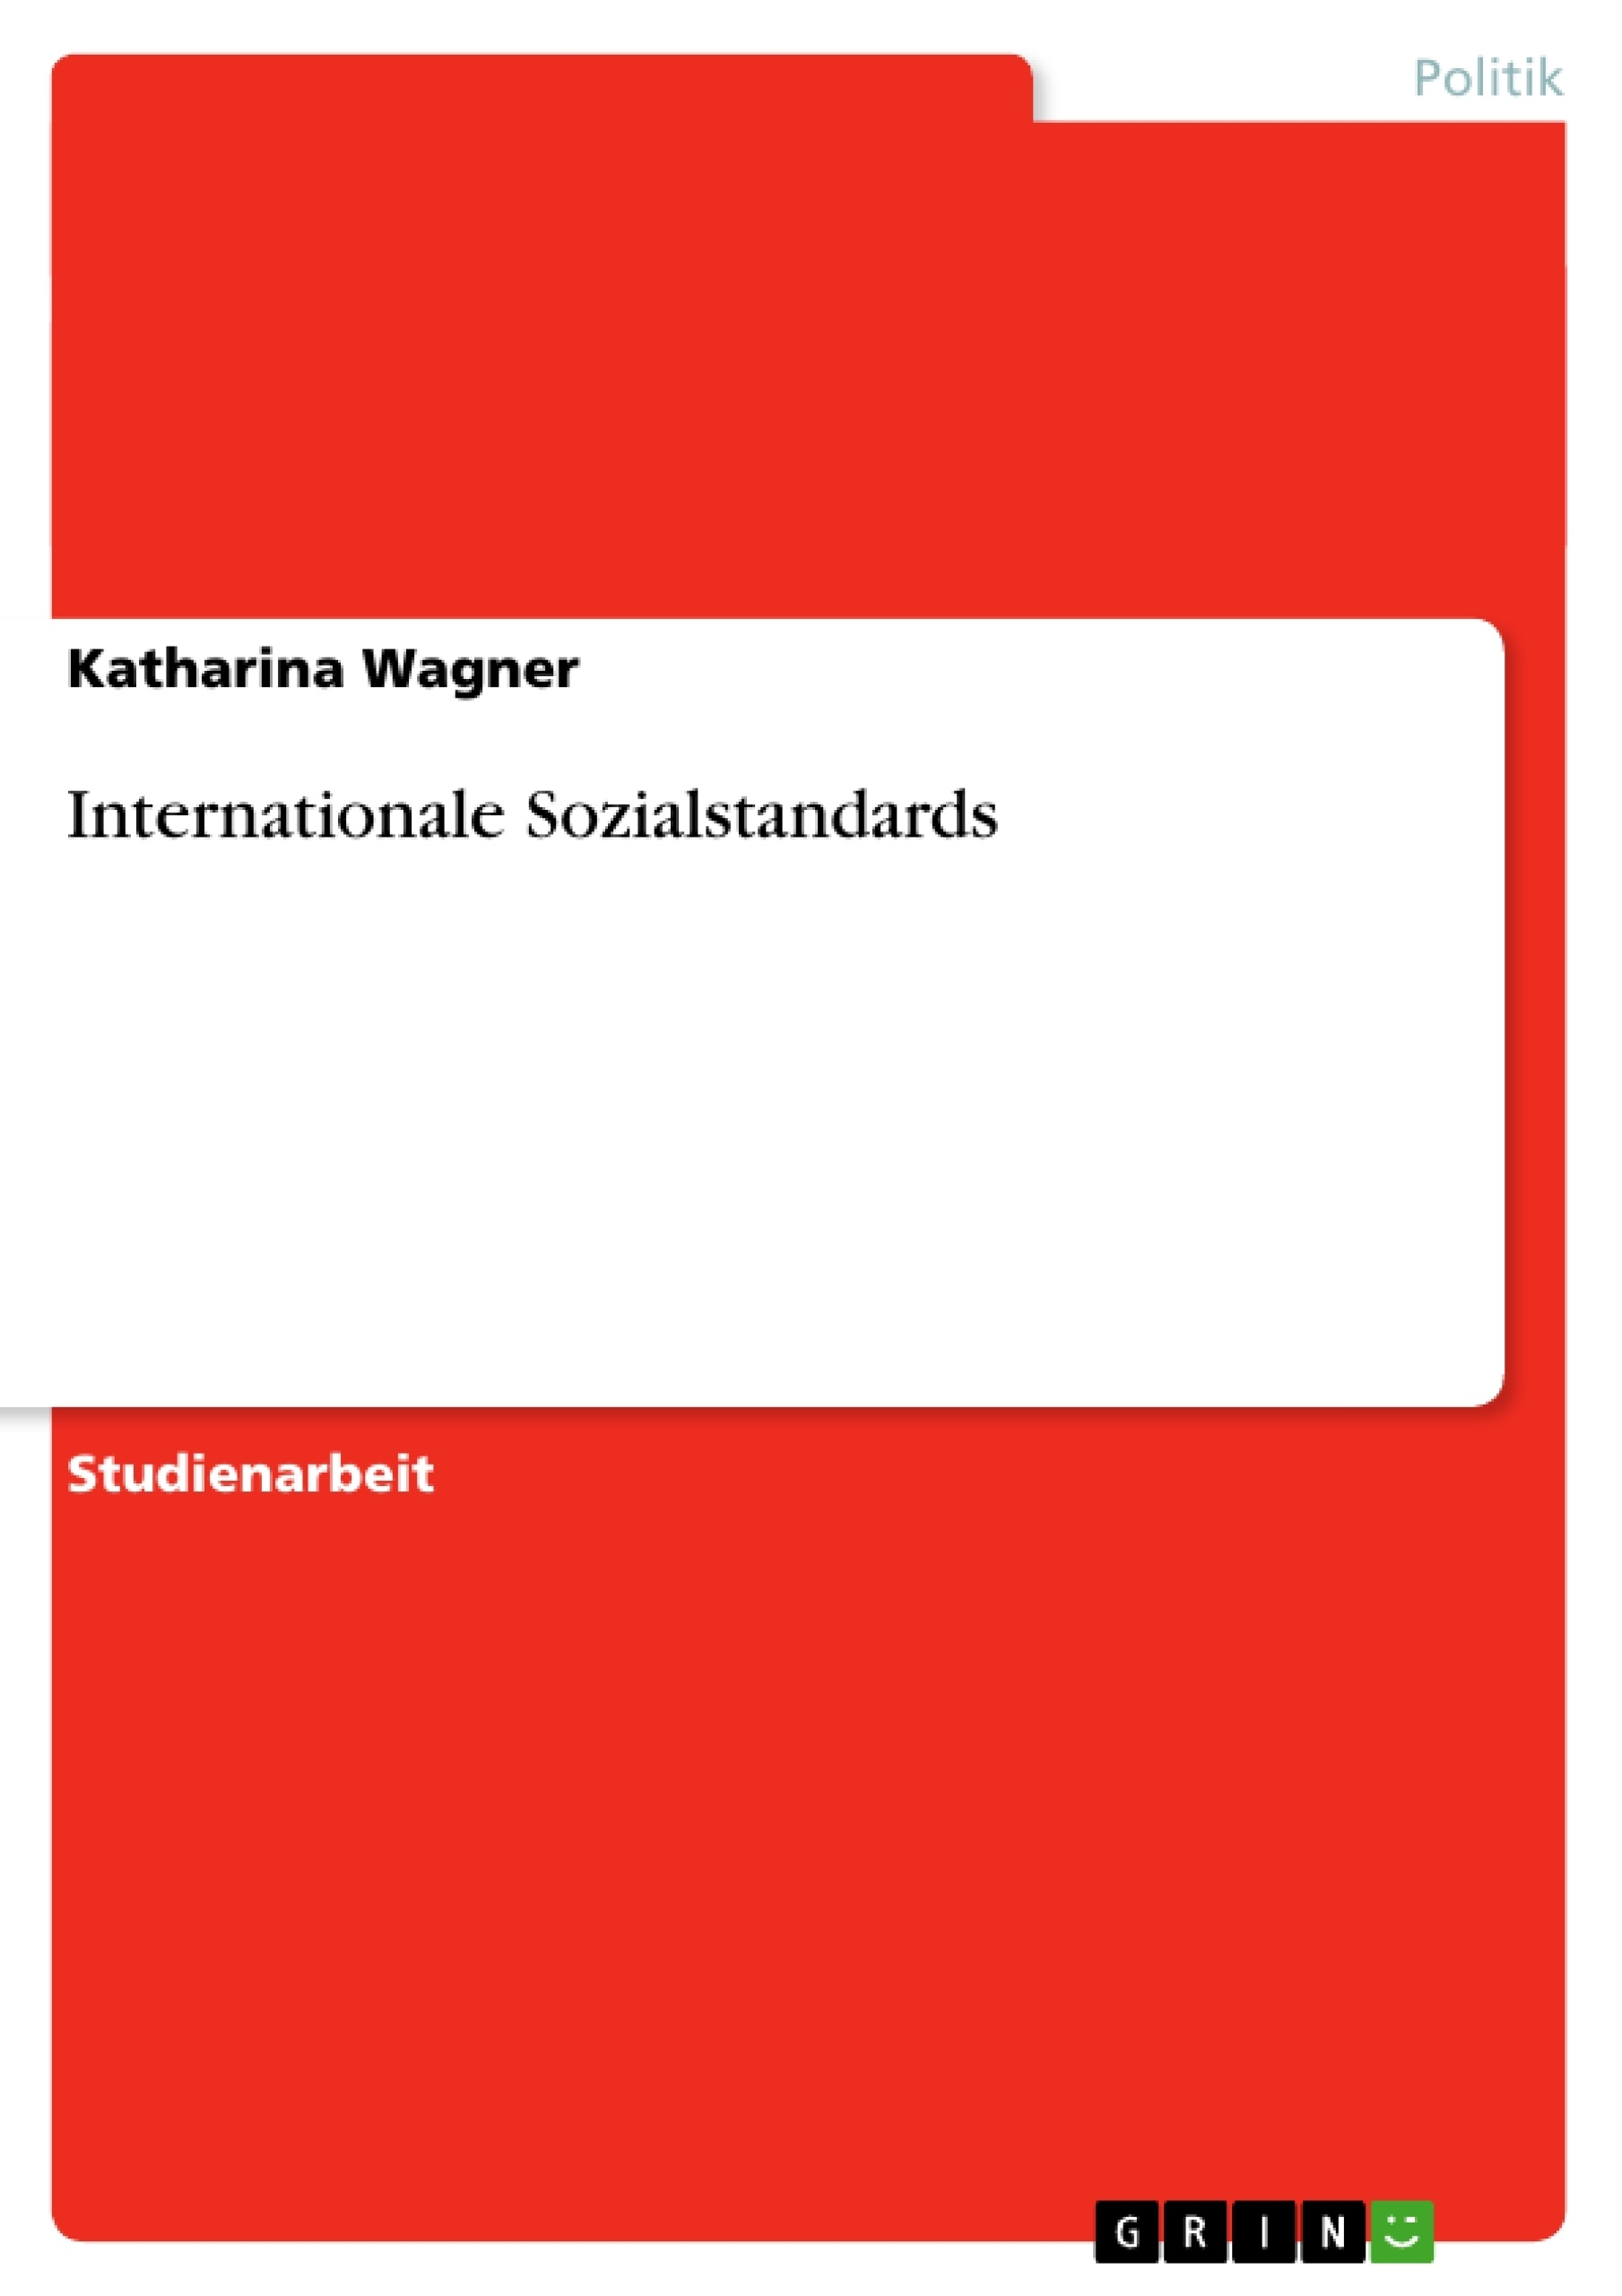 Titel: Internationale Sozialstandards